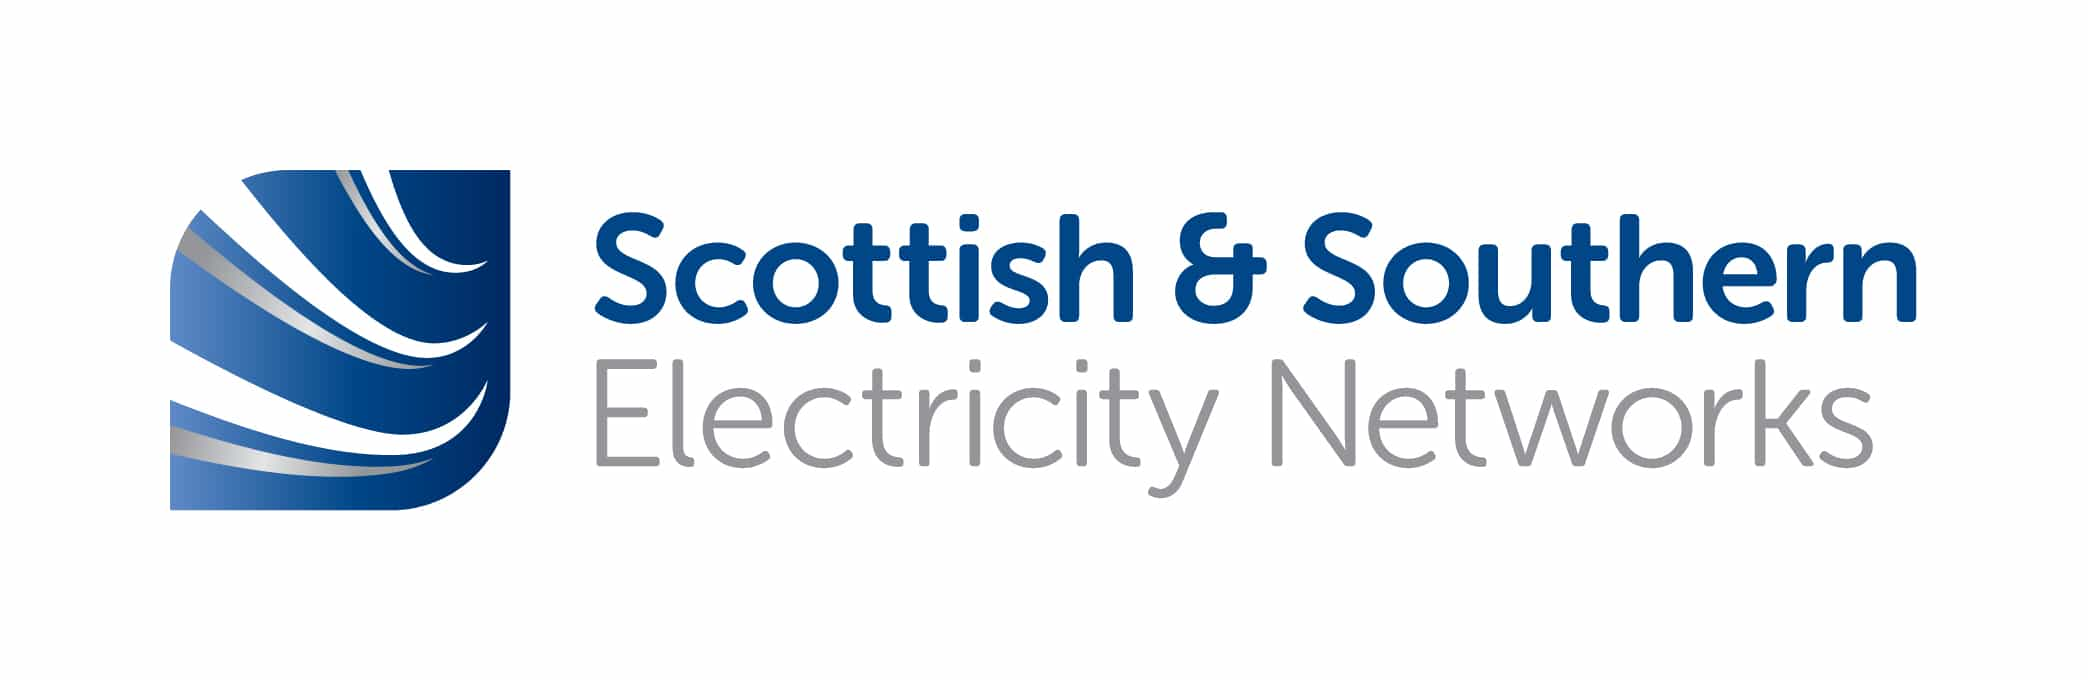 Scottish & Southern Electricity Networks - Cable Joints Cable Terminations 11kV 33kV LV HV